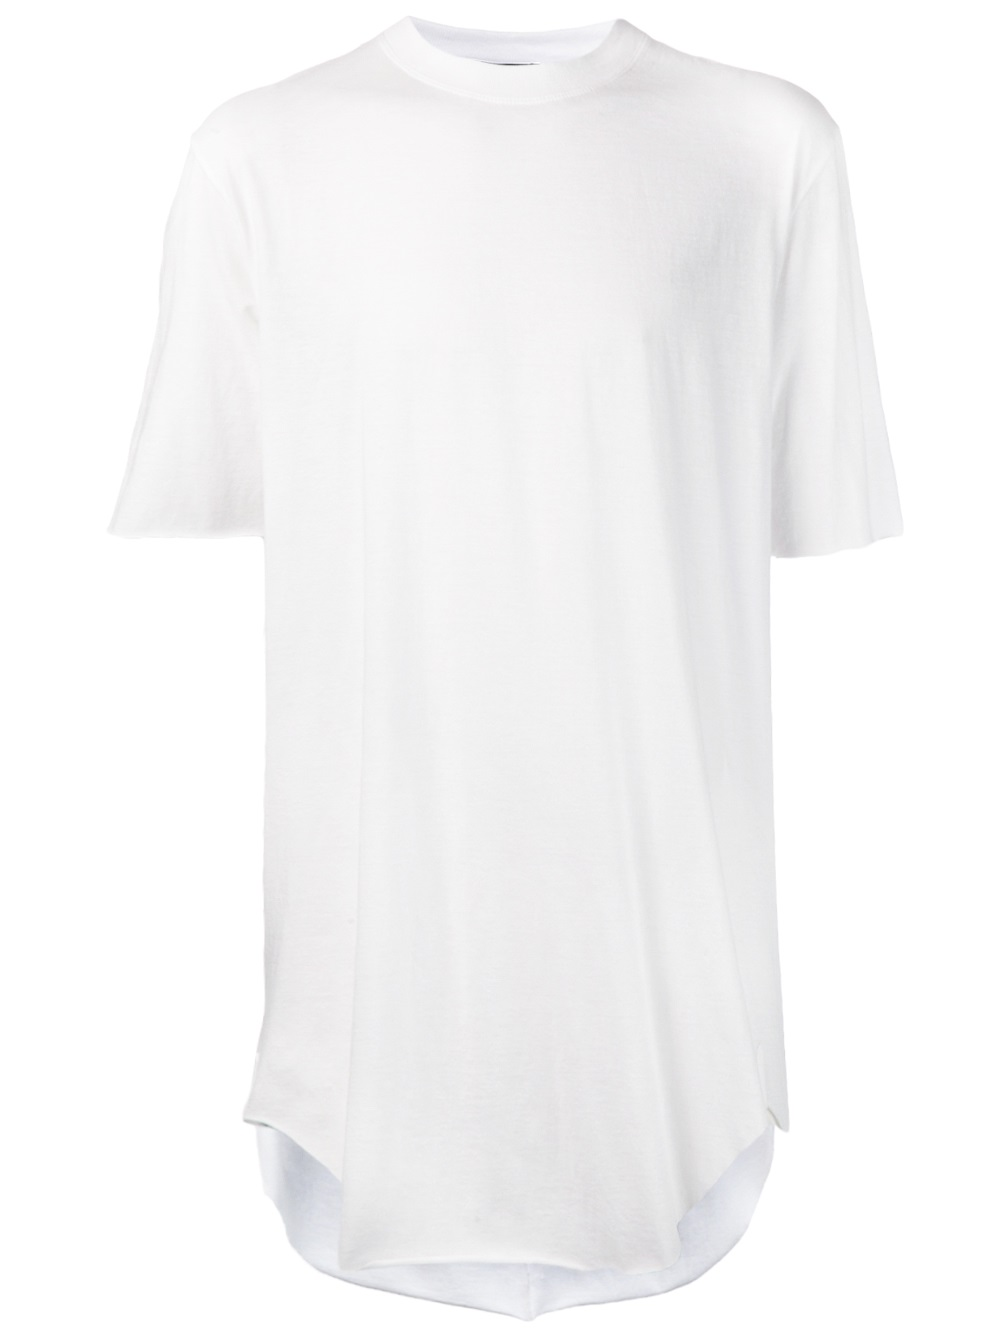 Plain White 100 Cotton T Shirt Tall Tee Wholesale Buy